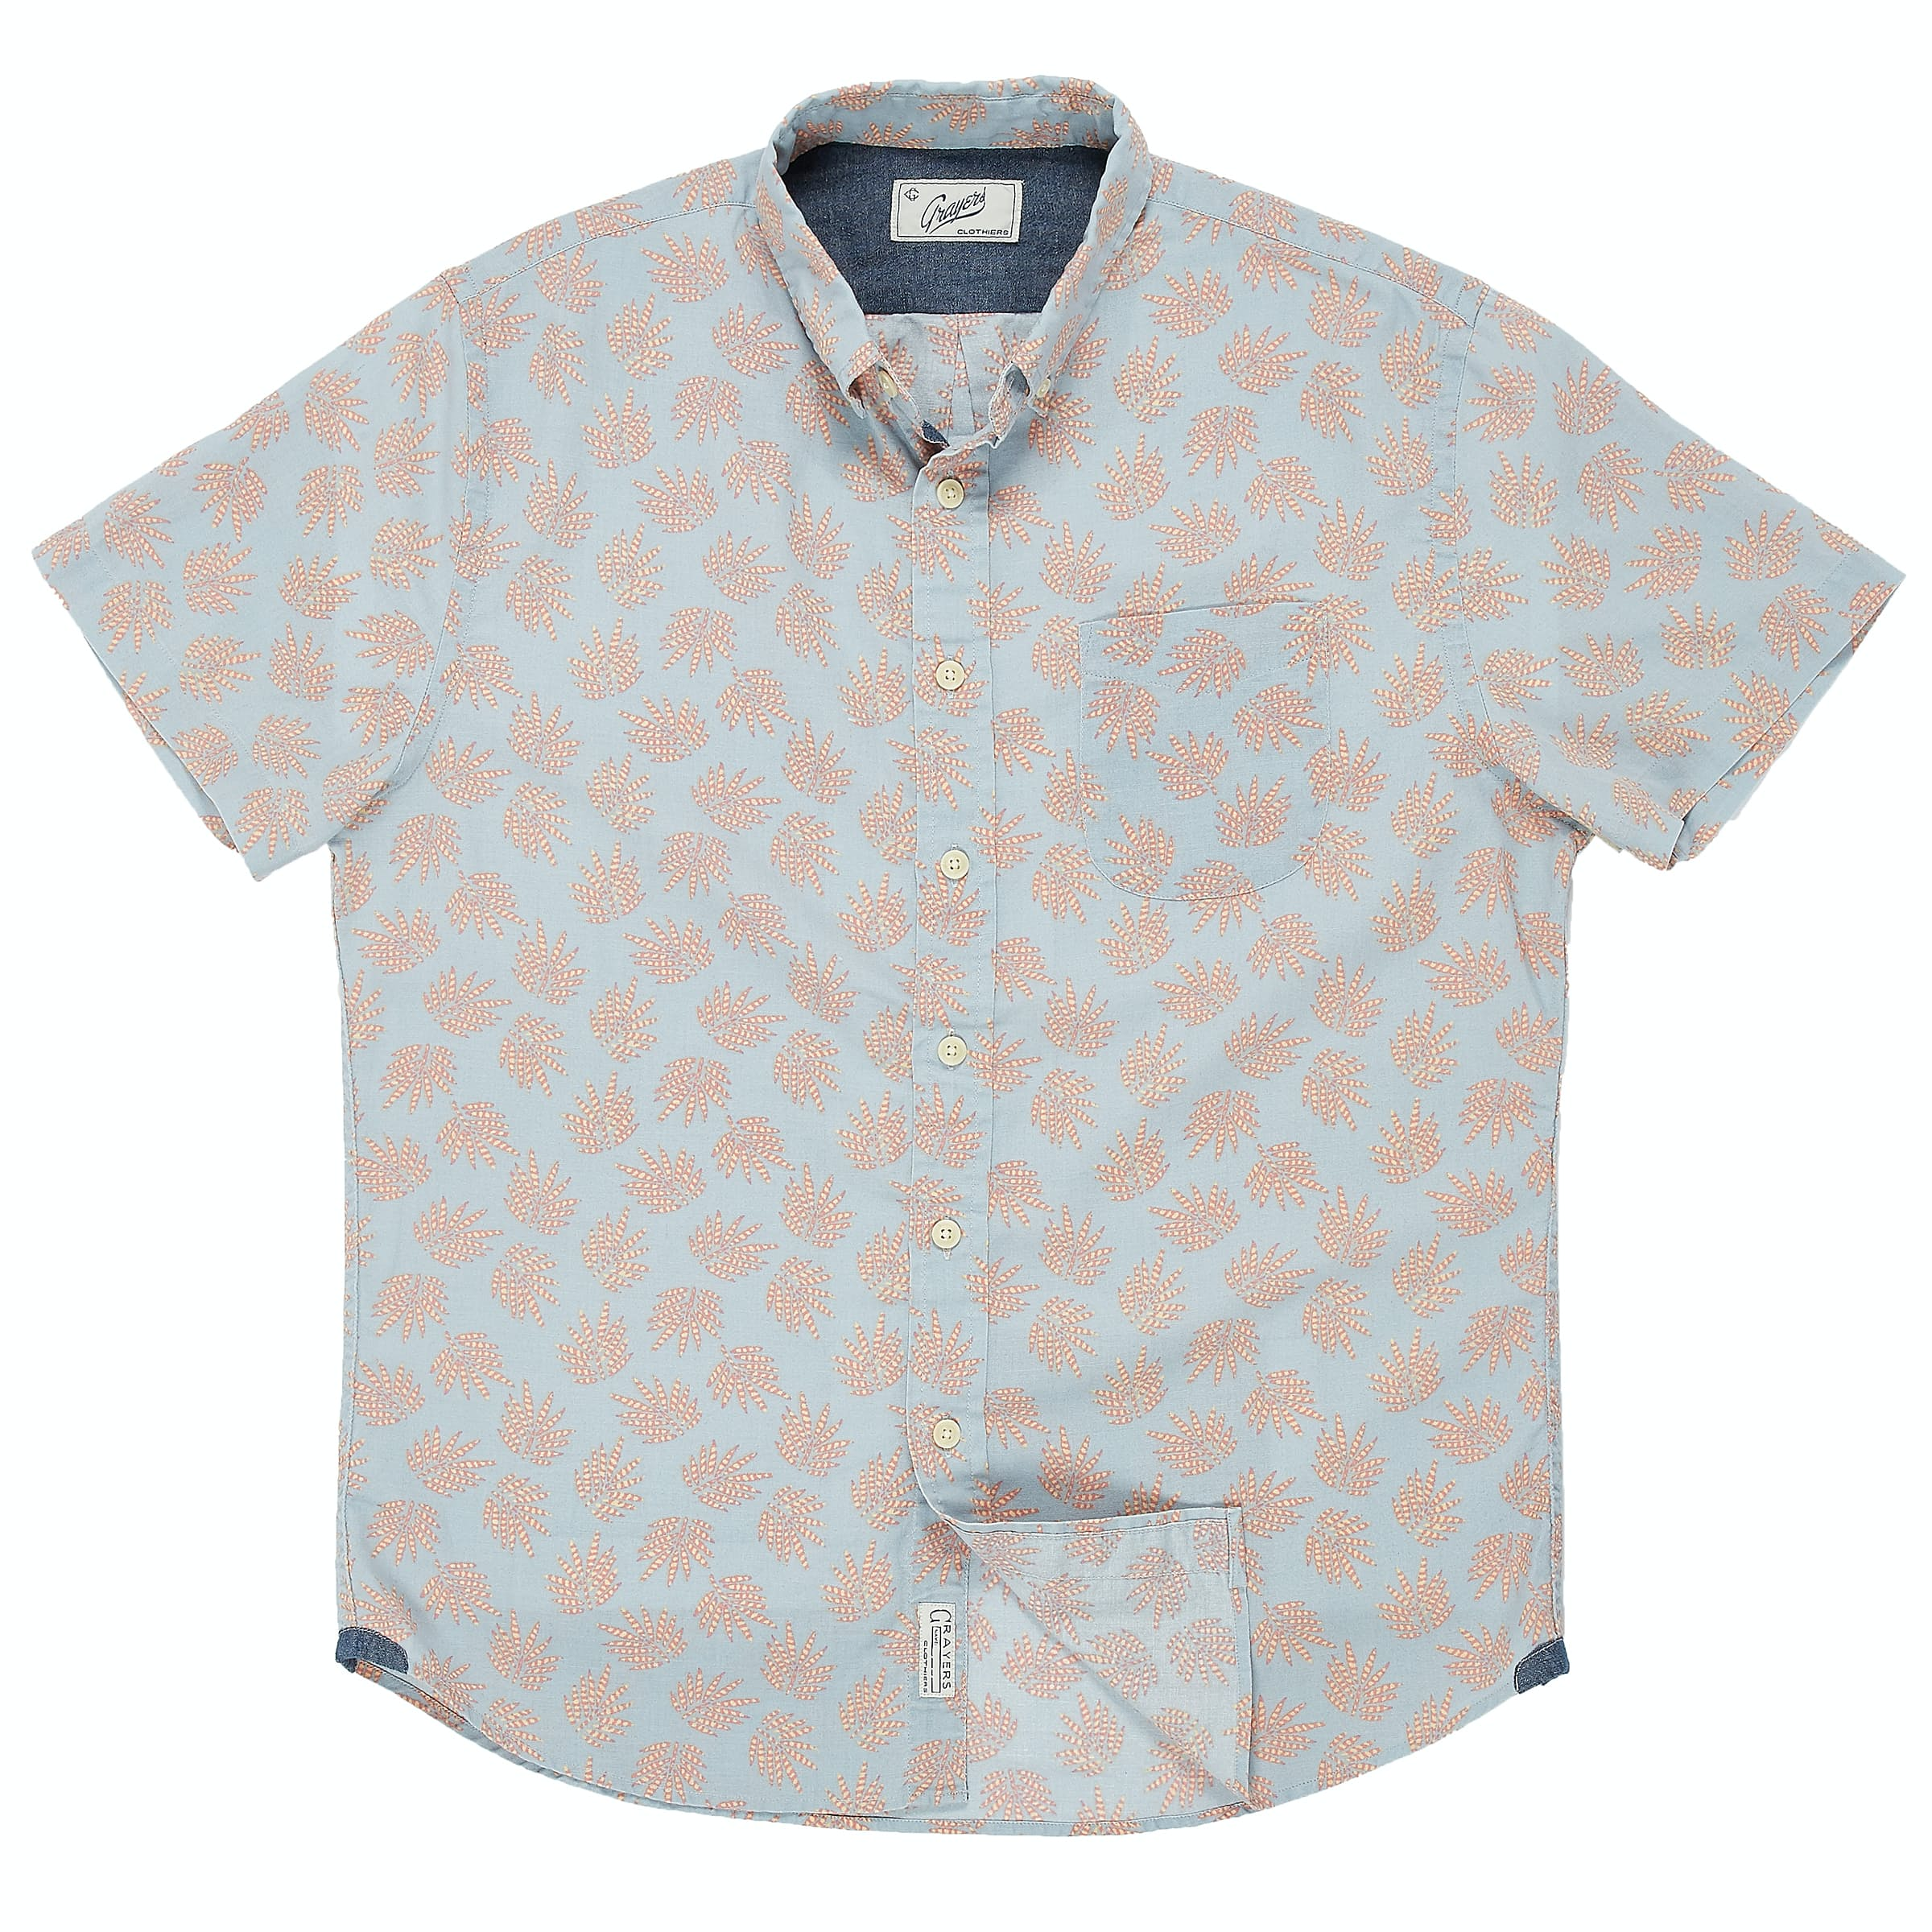 Aeshpfssq2 grayers blue palm leaf summer plain weave shirt 0 original